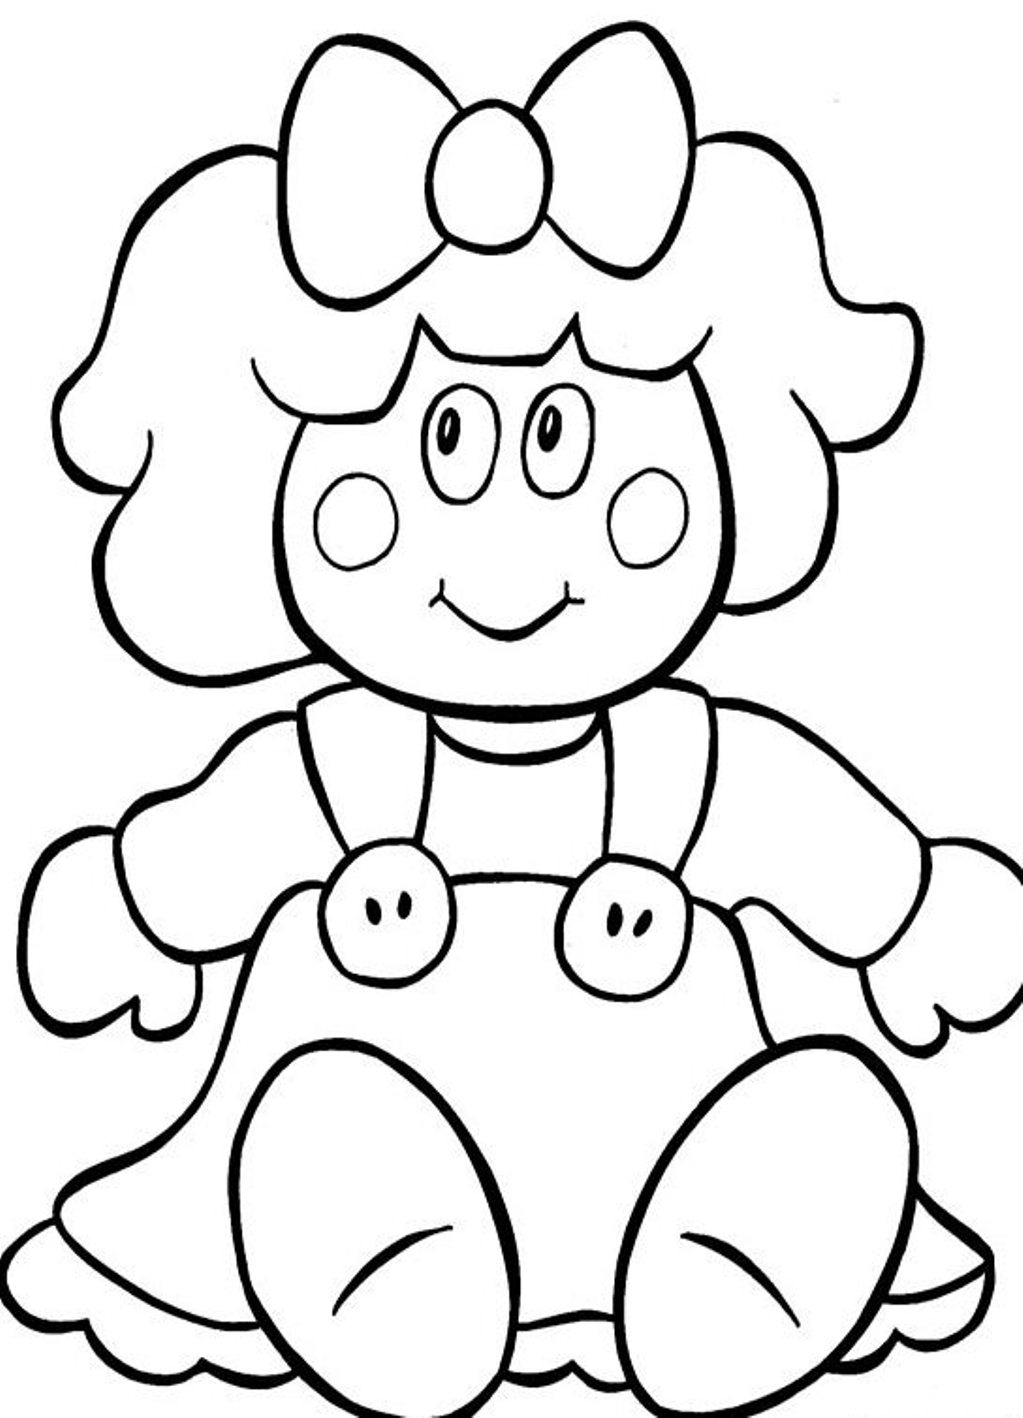 coloring pages dolls - photo#1